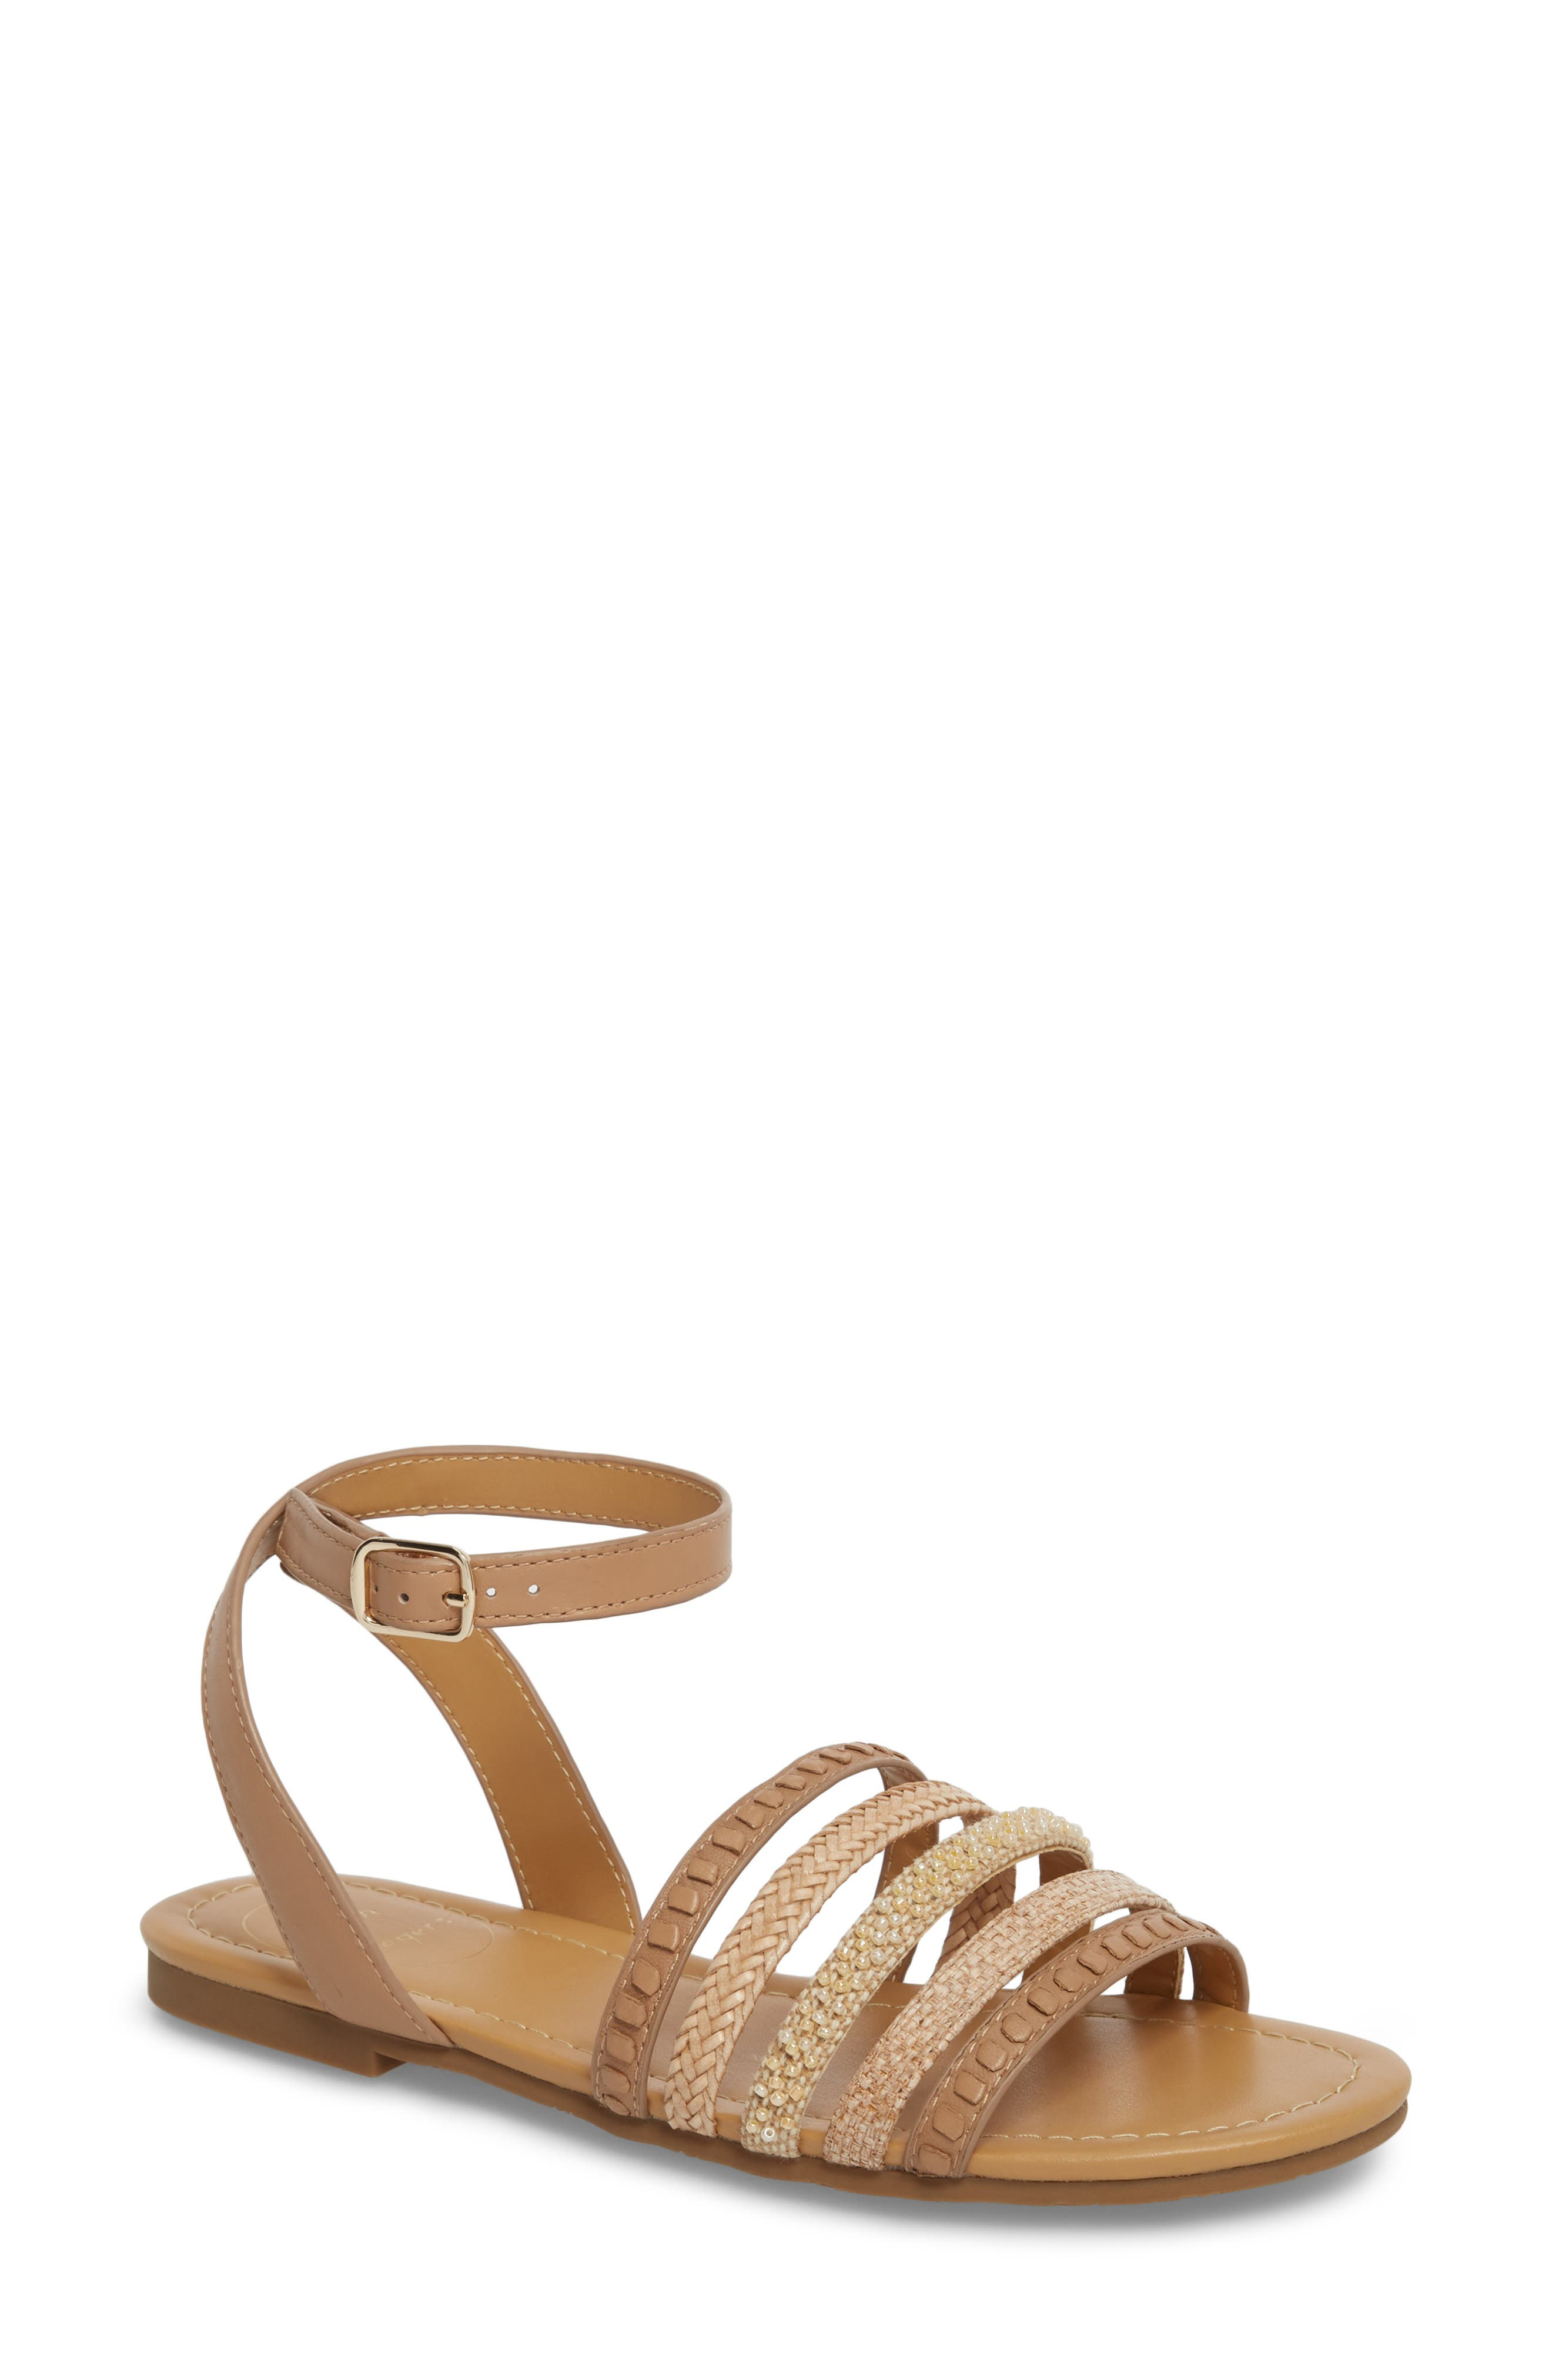 Hannah Braided Embellished Sandal,                         Main,                         color, BUFF LEATHER